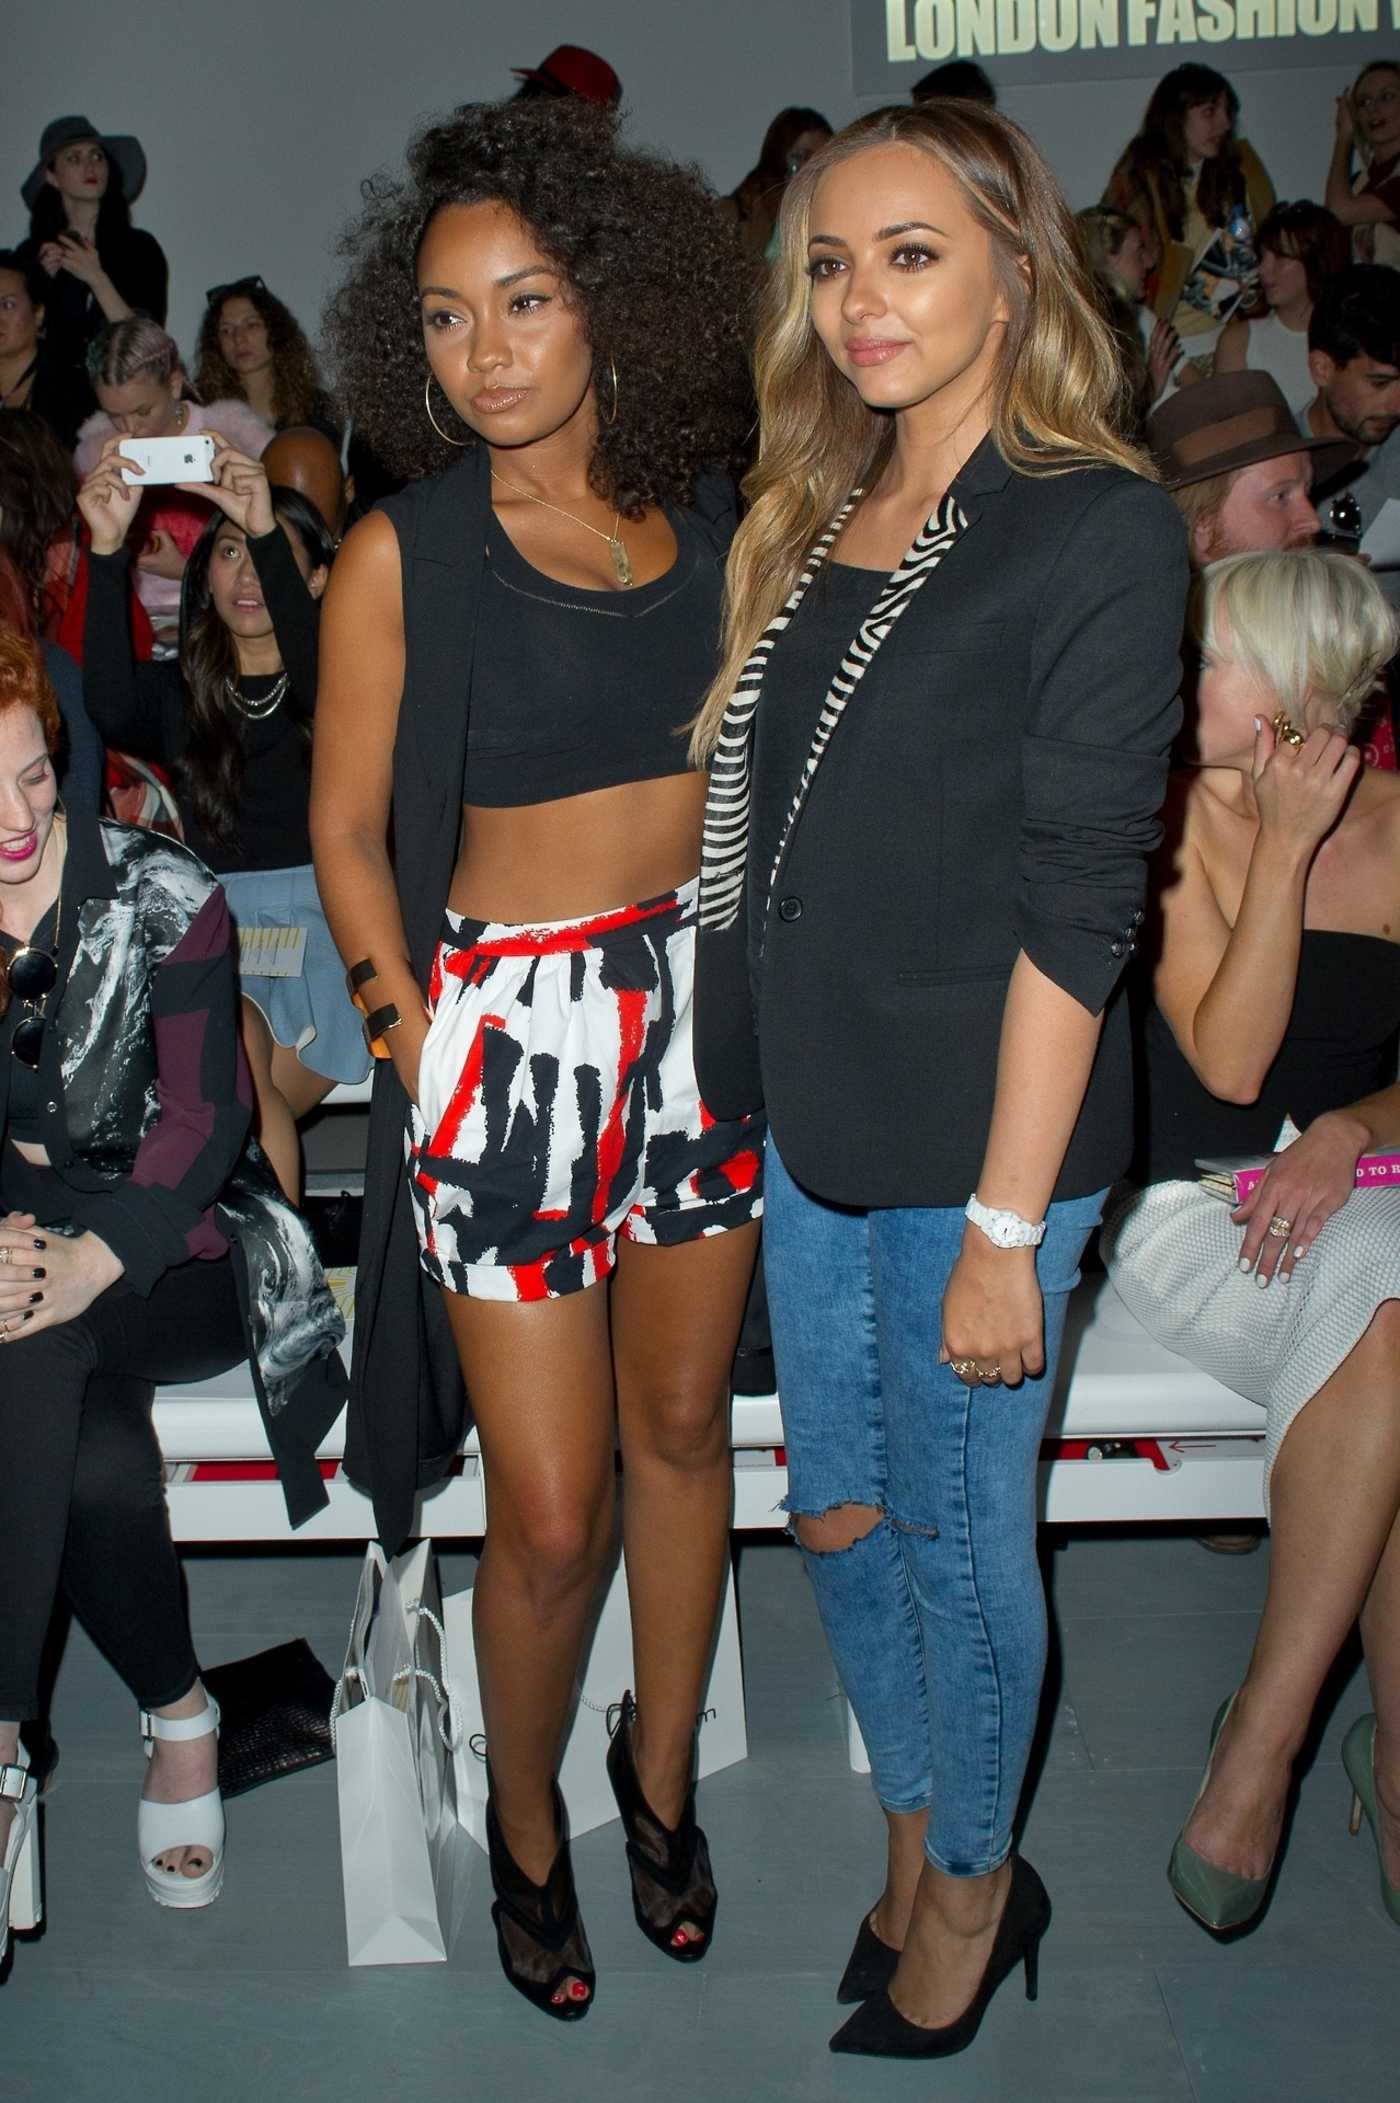 Jade Thirlwall and Leigh Anne Pinnock at Somerset House for Londons Fashion Week